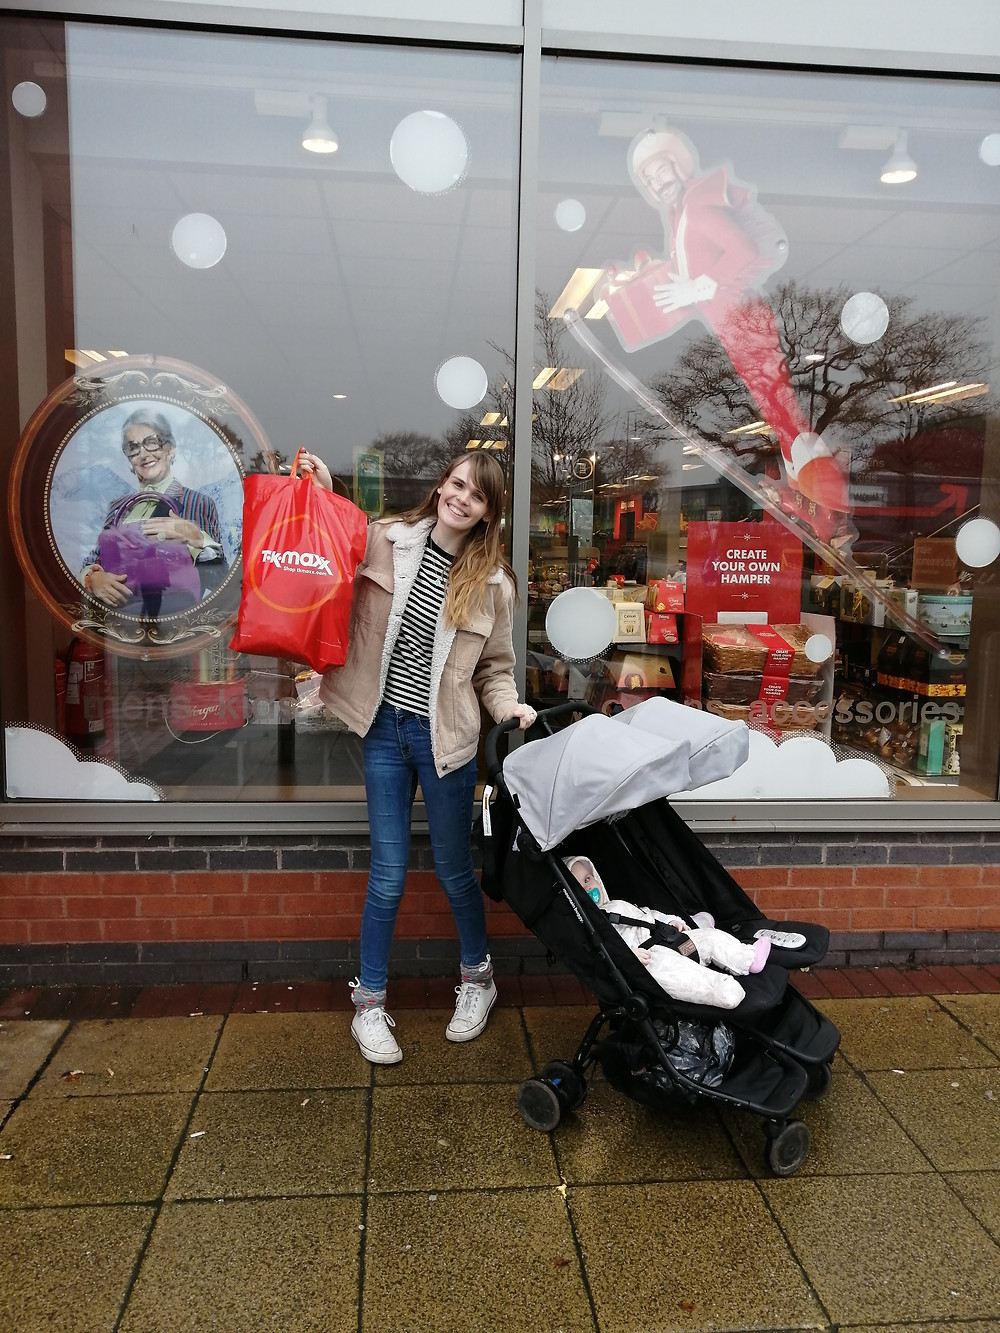 Shopping at Tk Maxx at christmas and how I saved money